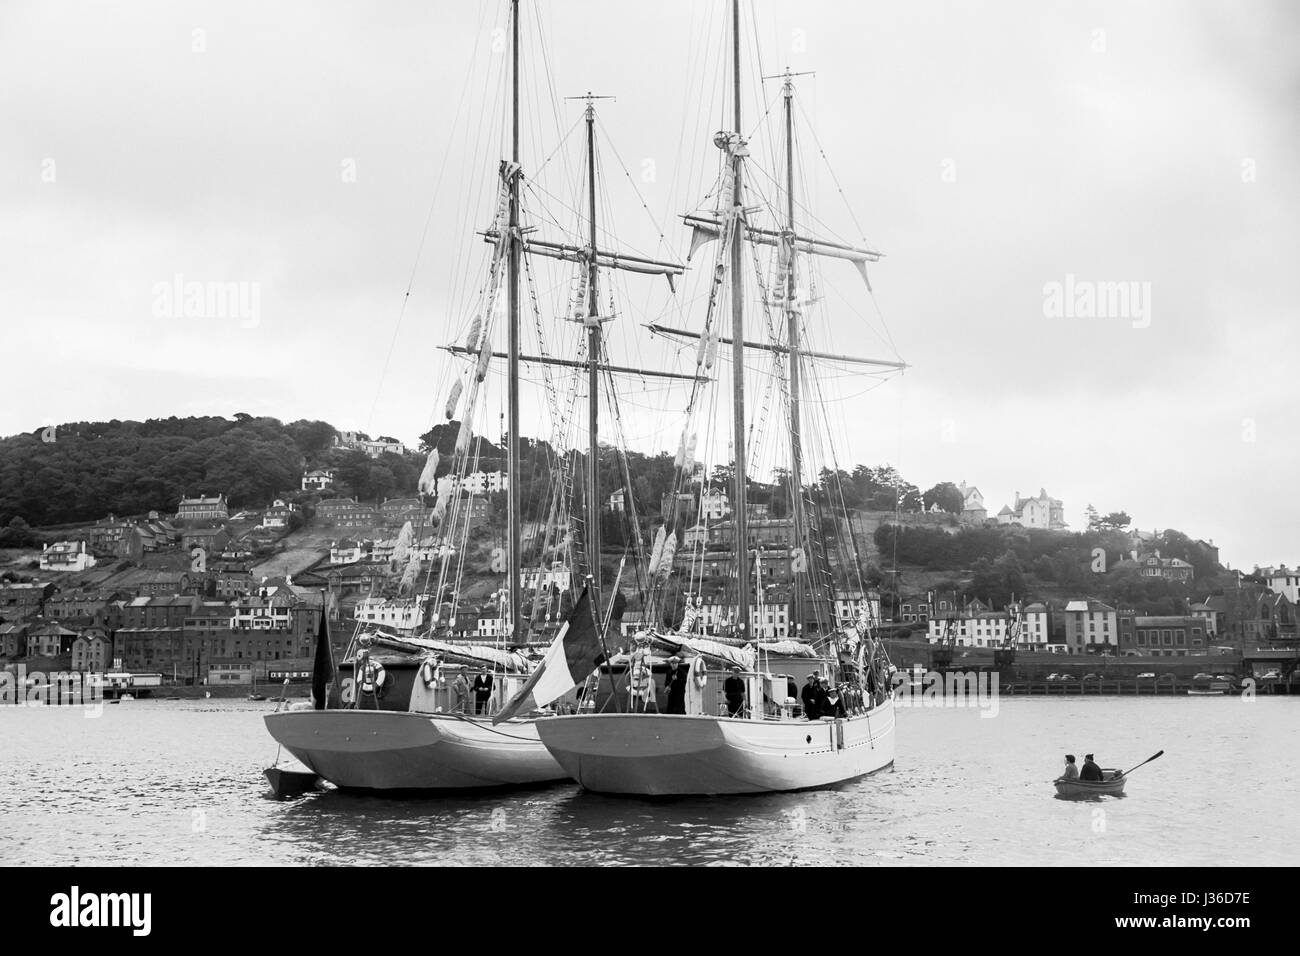 A small rowing boat approaches two large  yachts anchored off Torquay Devon. Circa 1920 - Stock Image